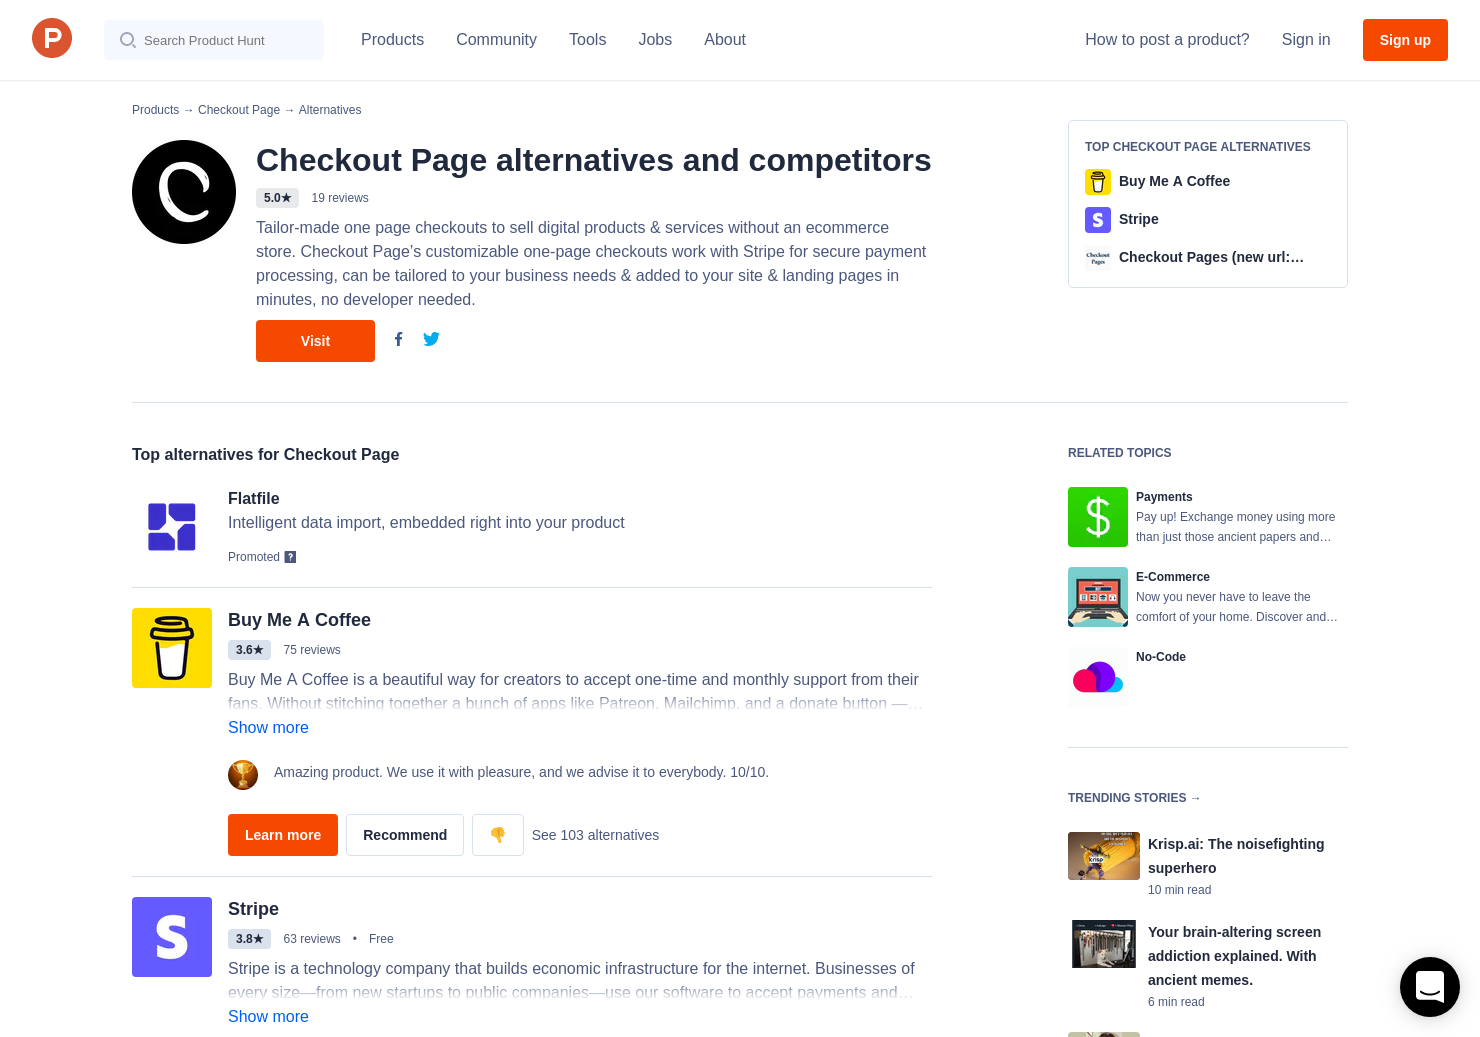 13 Alternatives to Checkout Page | Product Hunt